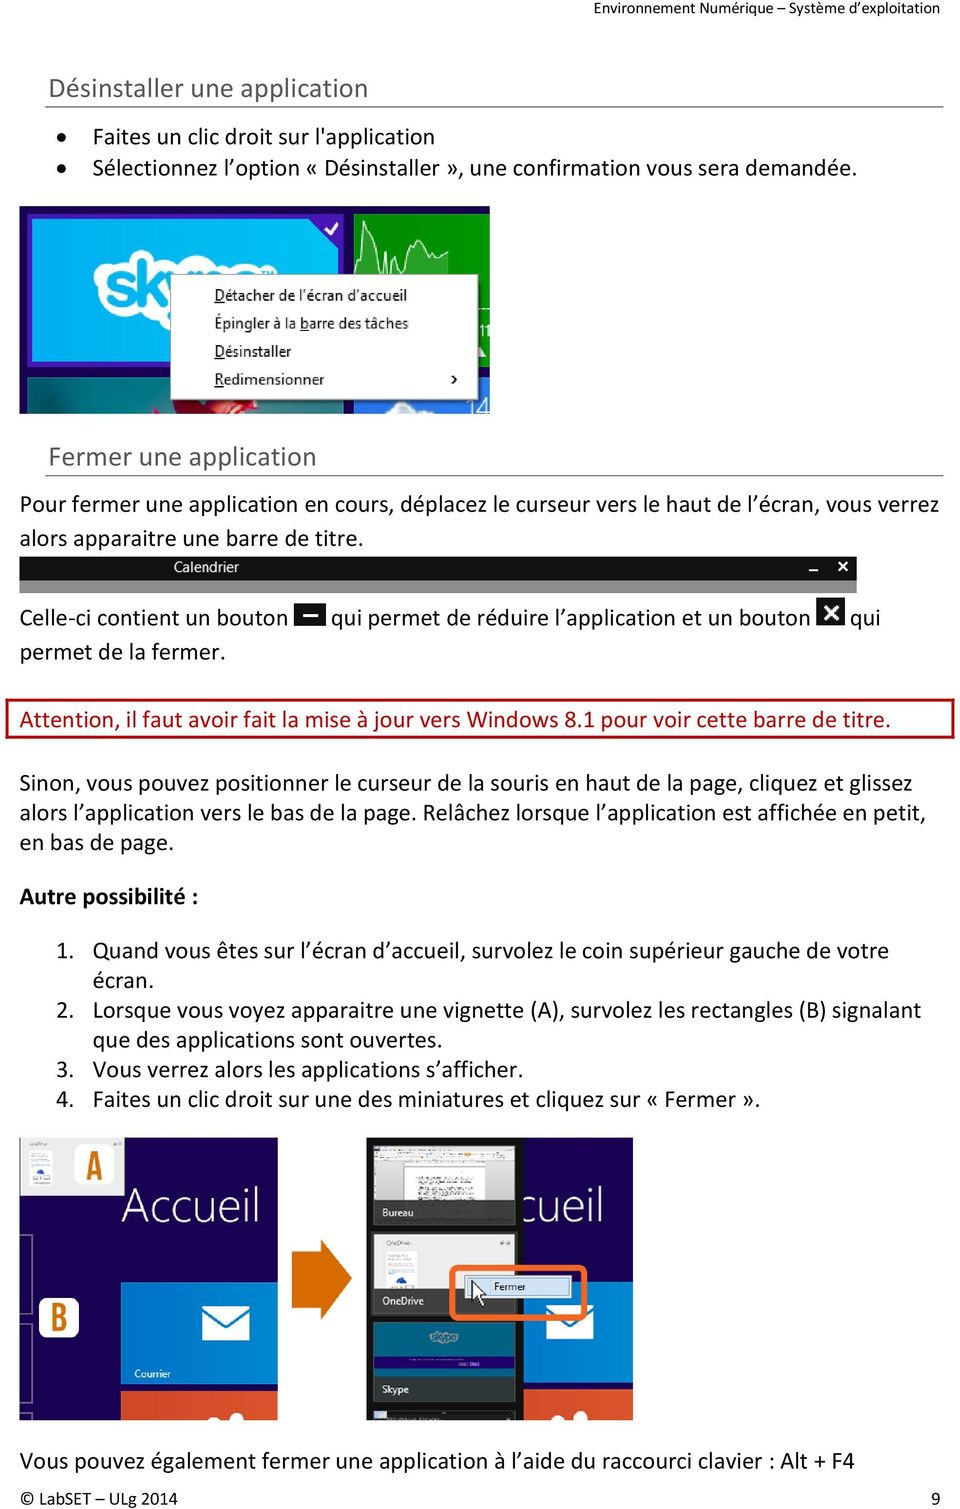 Celle-ci contient un bouton qui permet de réduire l application et un bouton qui permet de la fermer. Attention, il faut avoir fait la mise à jour vers Windows 8.1 pour voir cette barre de titre.